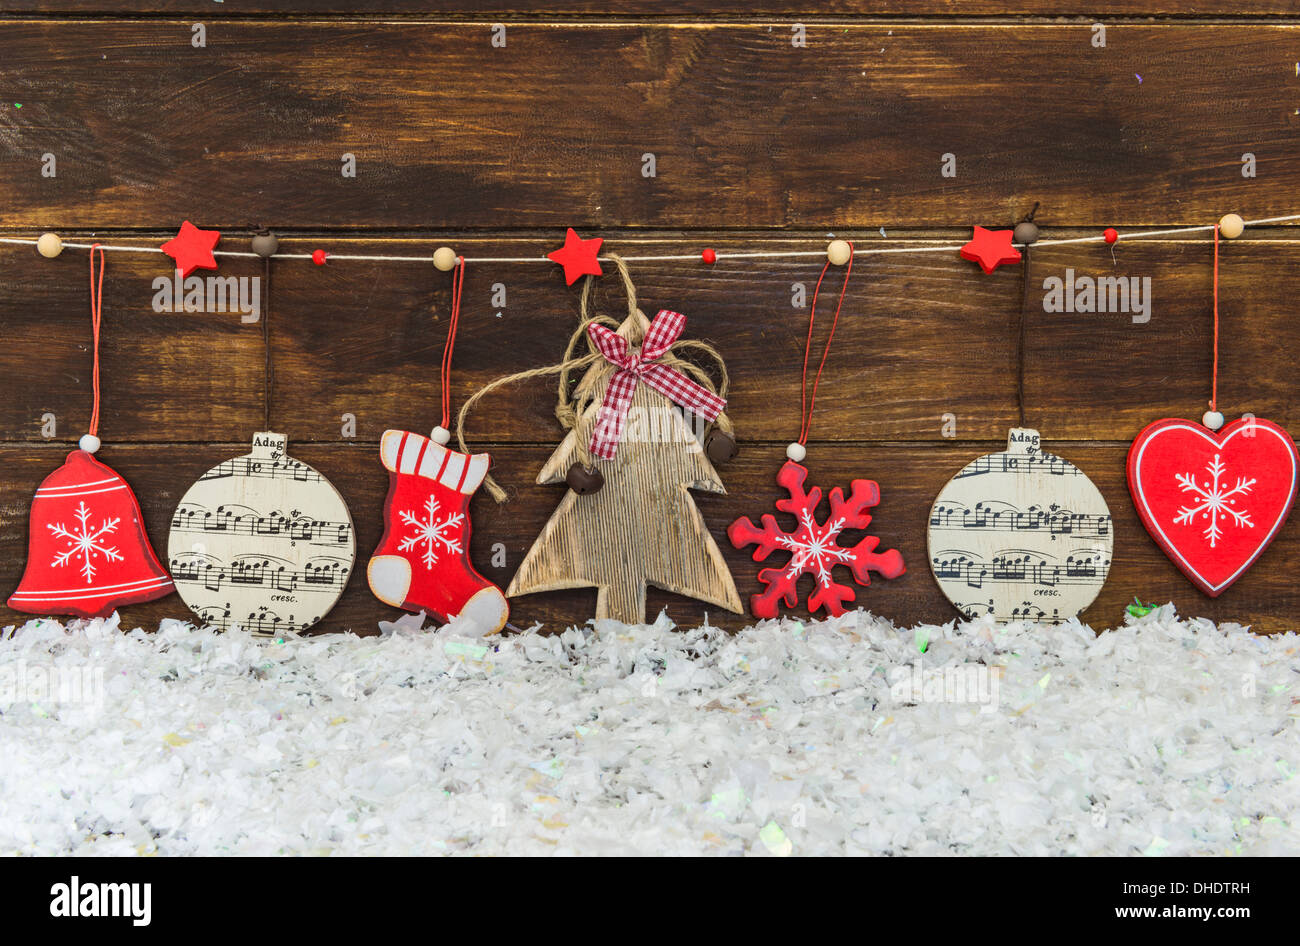 rustic shabby chic christmas decorations hanging on brown wooden board stock image